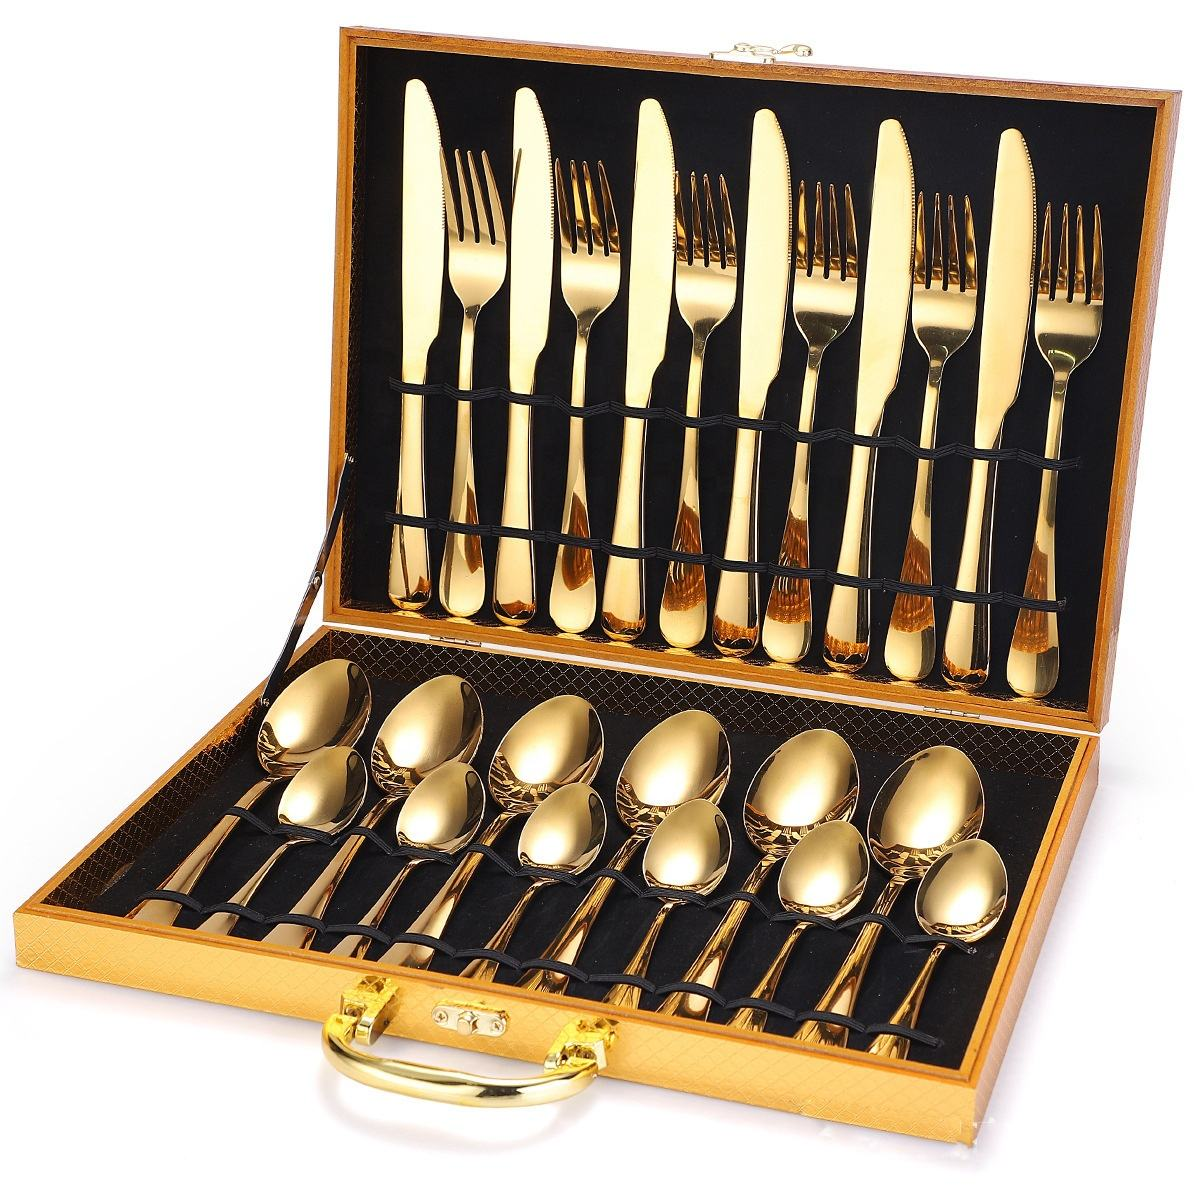 Best-Selling 24-piece Stainless Steel Gold Cutlery Set With Wooden Box